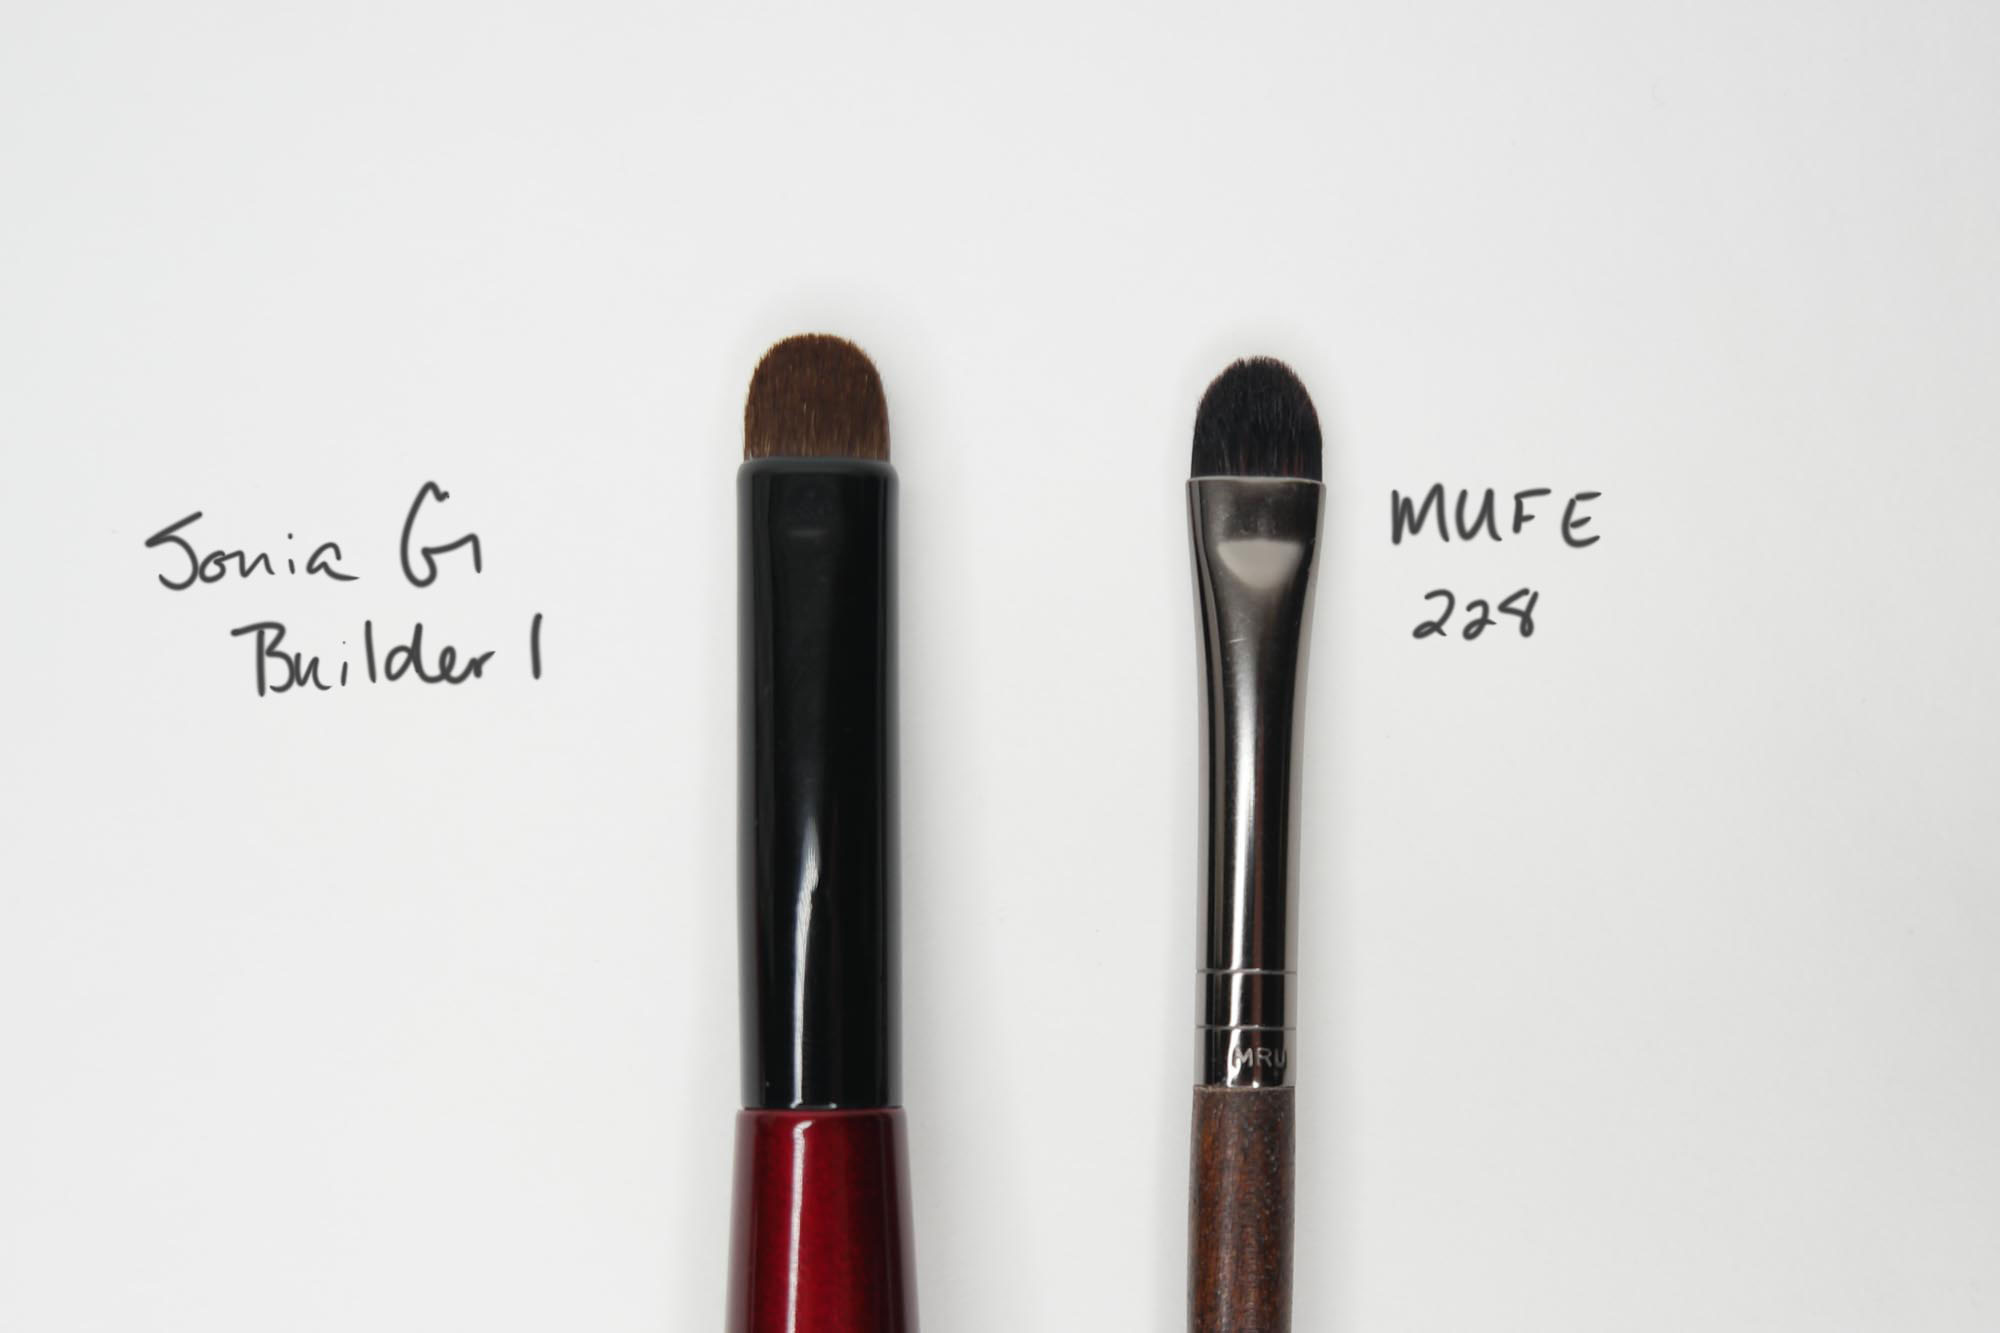 Sonia G Builder 1 vs MUFE 228